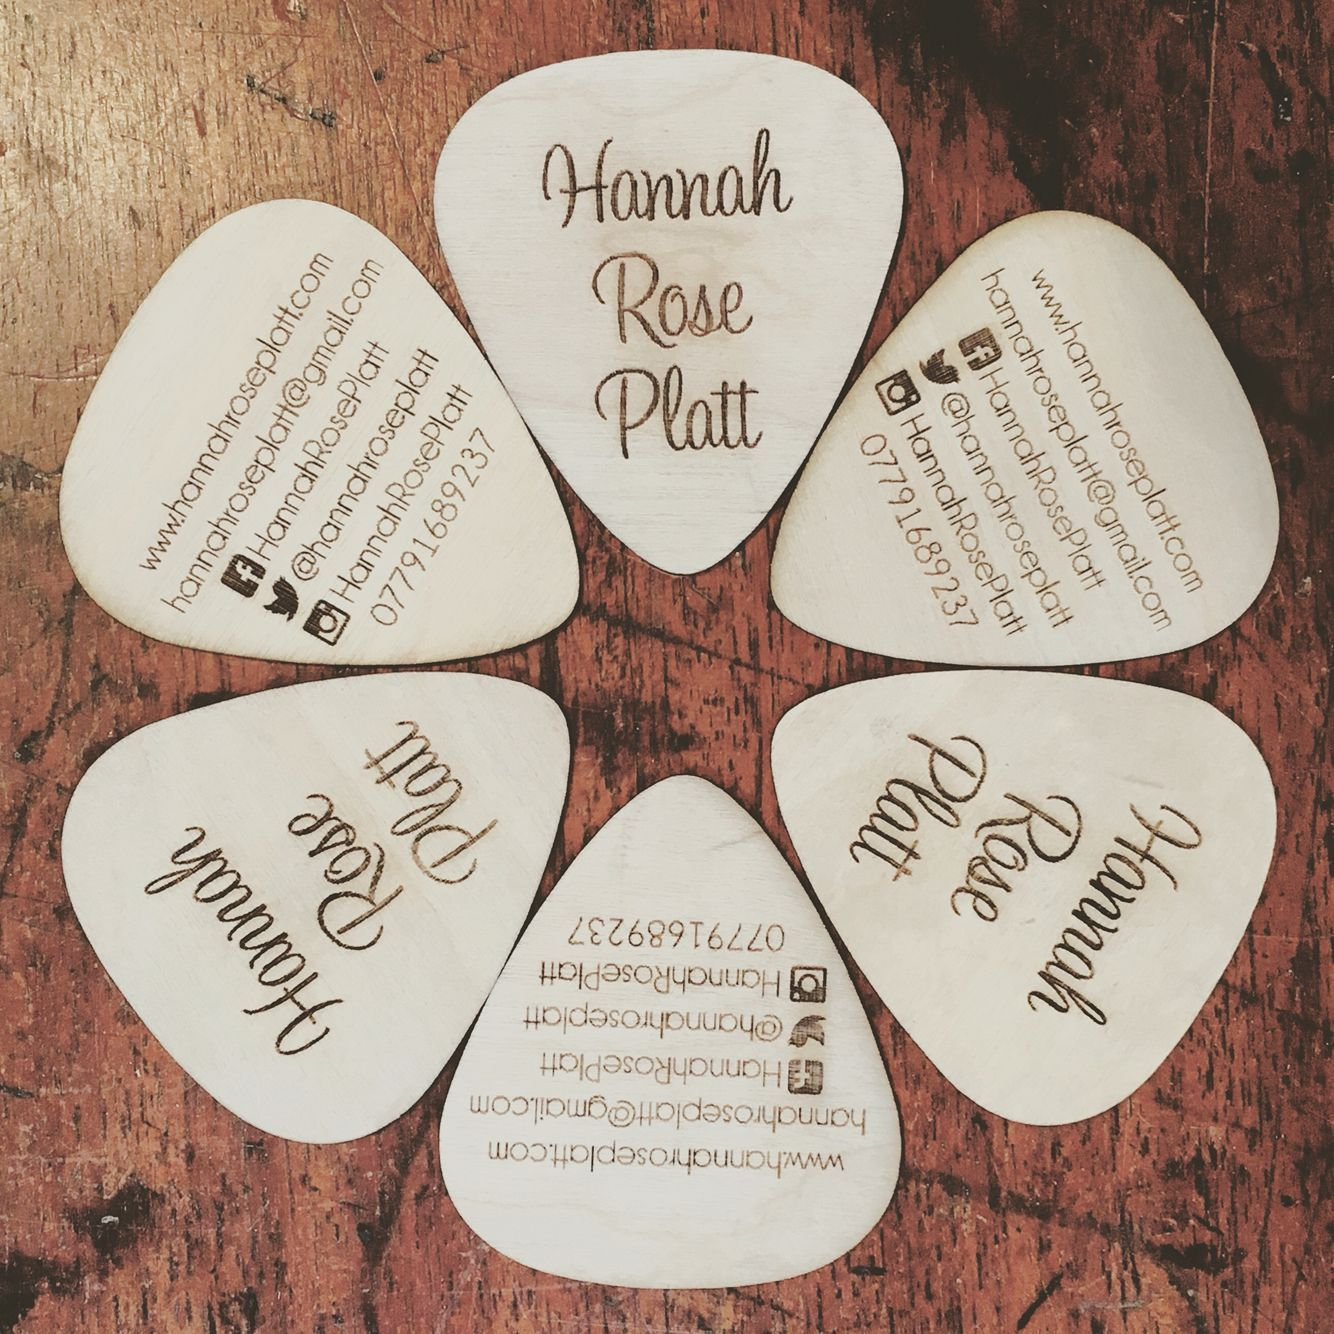 Unique and unusual wooden business cards for musician Hannah Rose ...